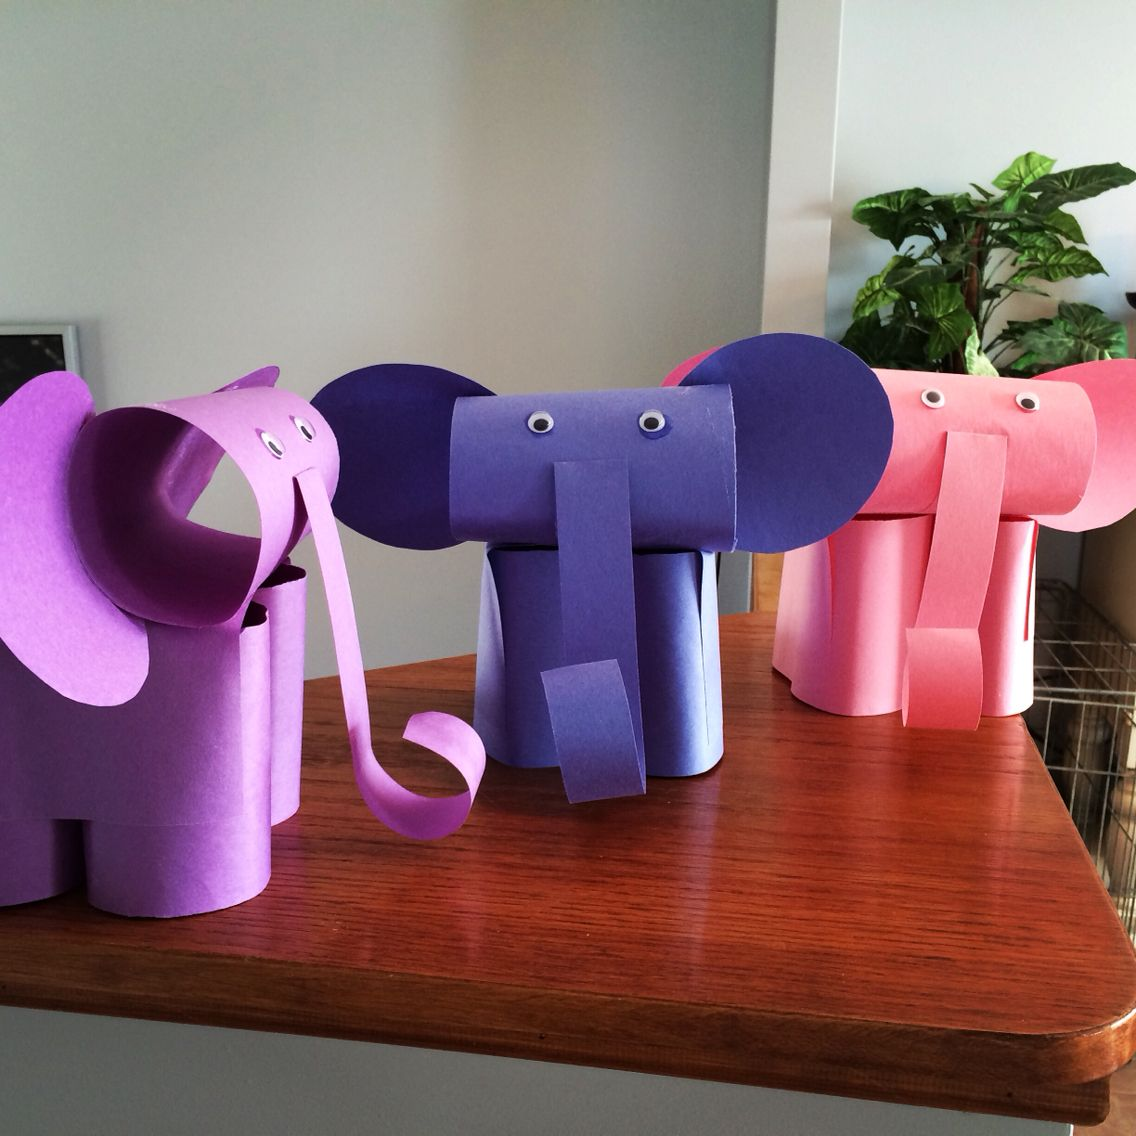 Crafts With Paper Towel Rolls For Preschoolers: Elephant From Toilet Paper Roles